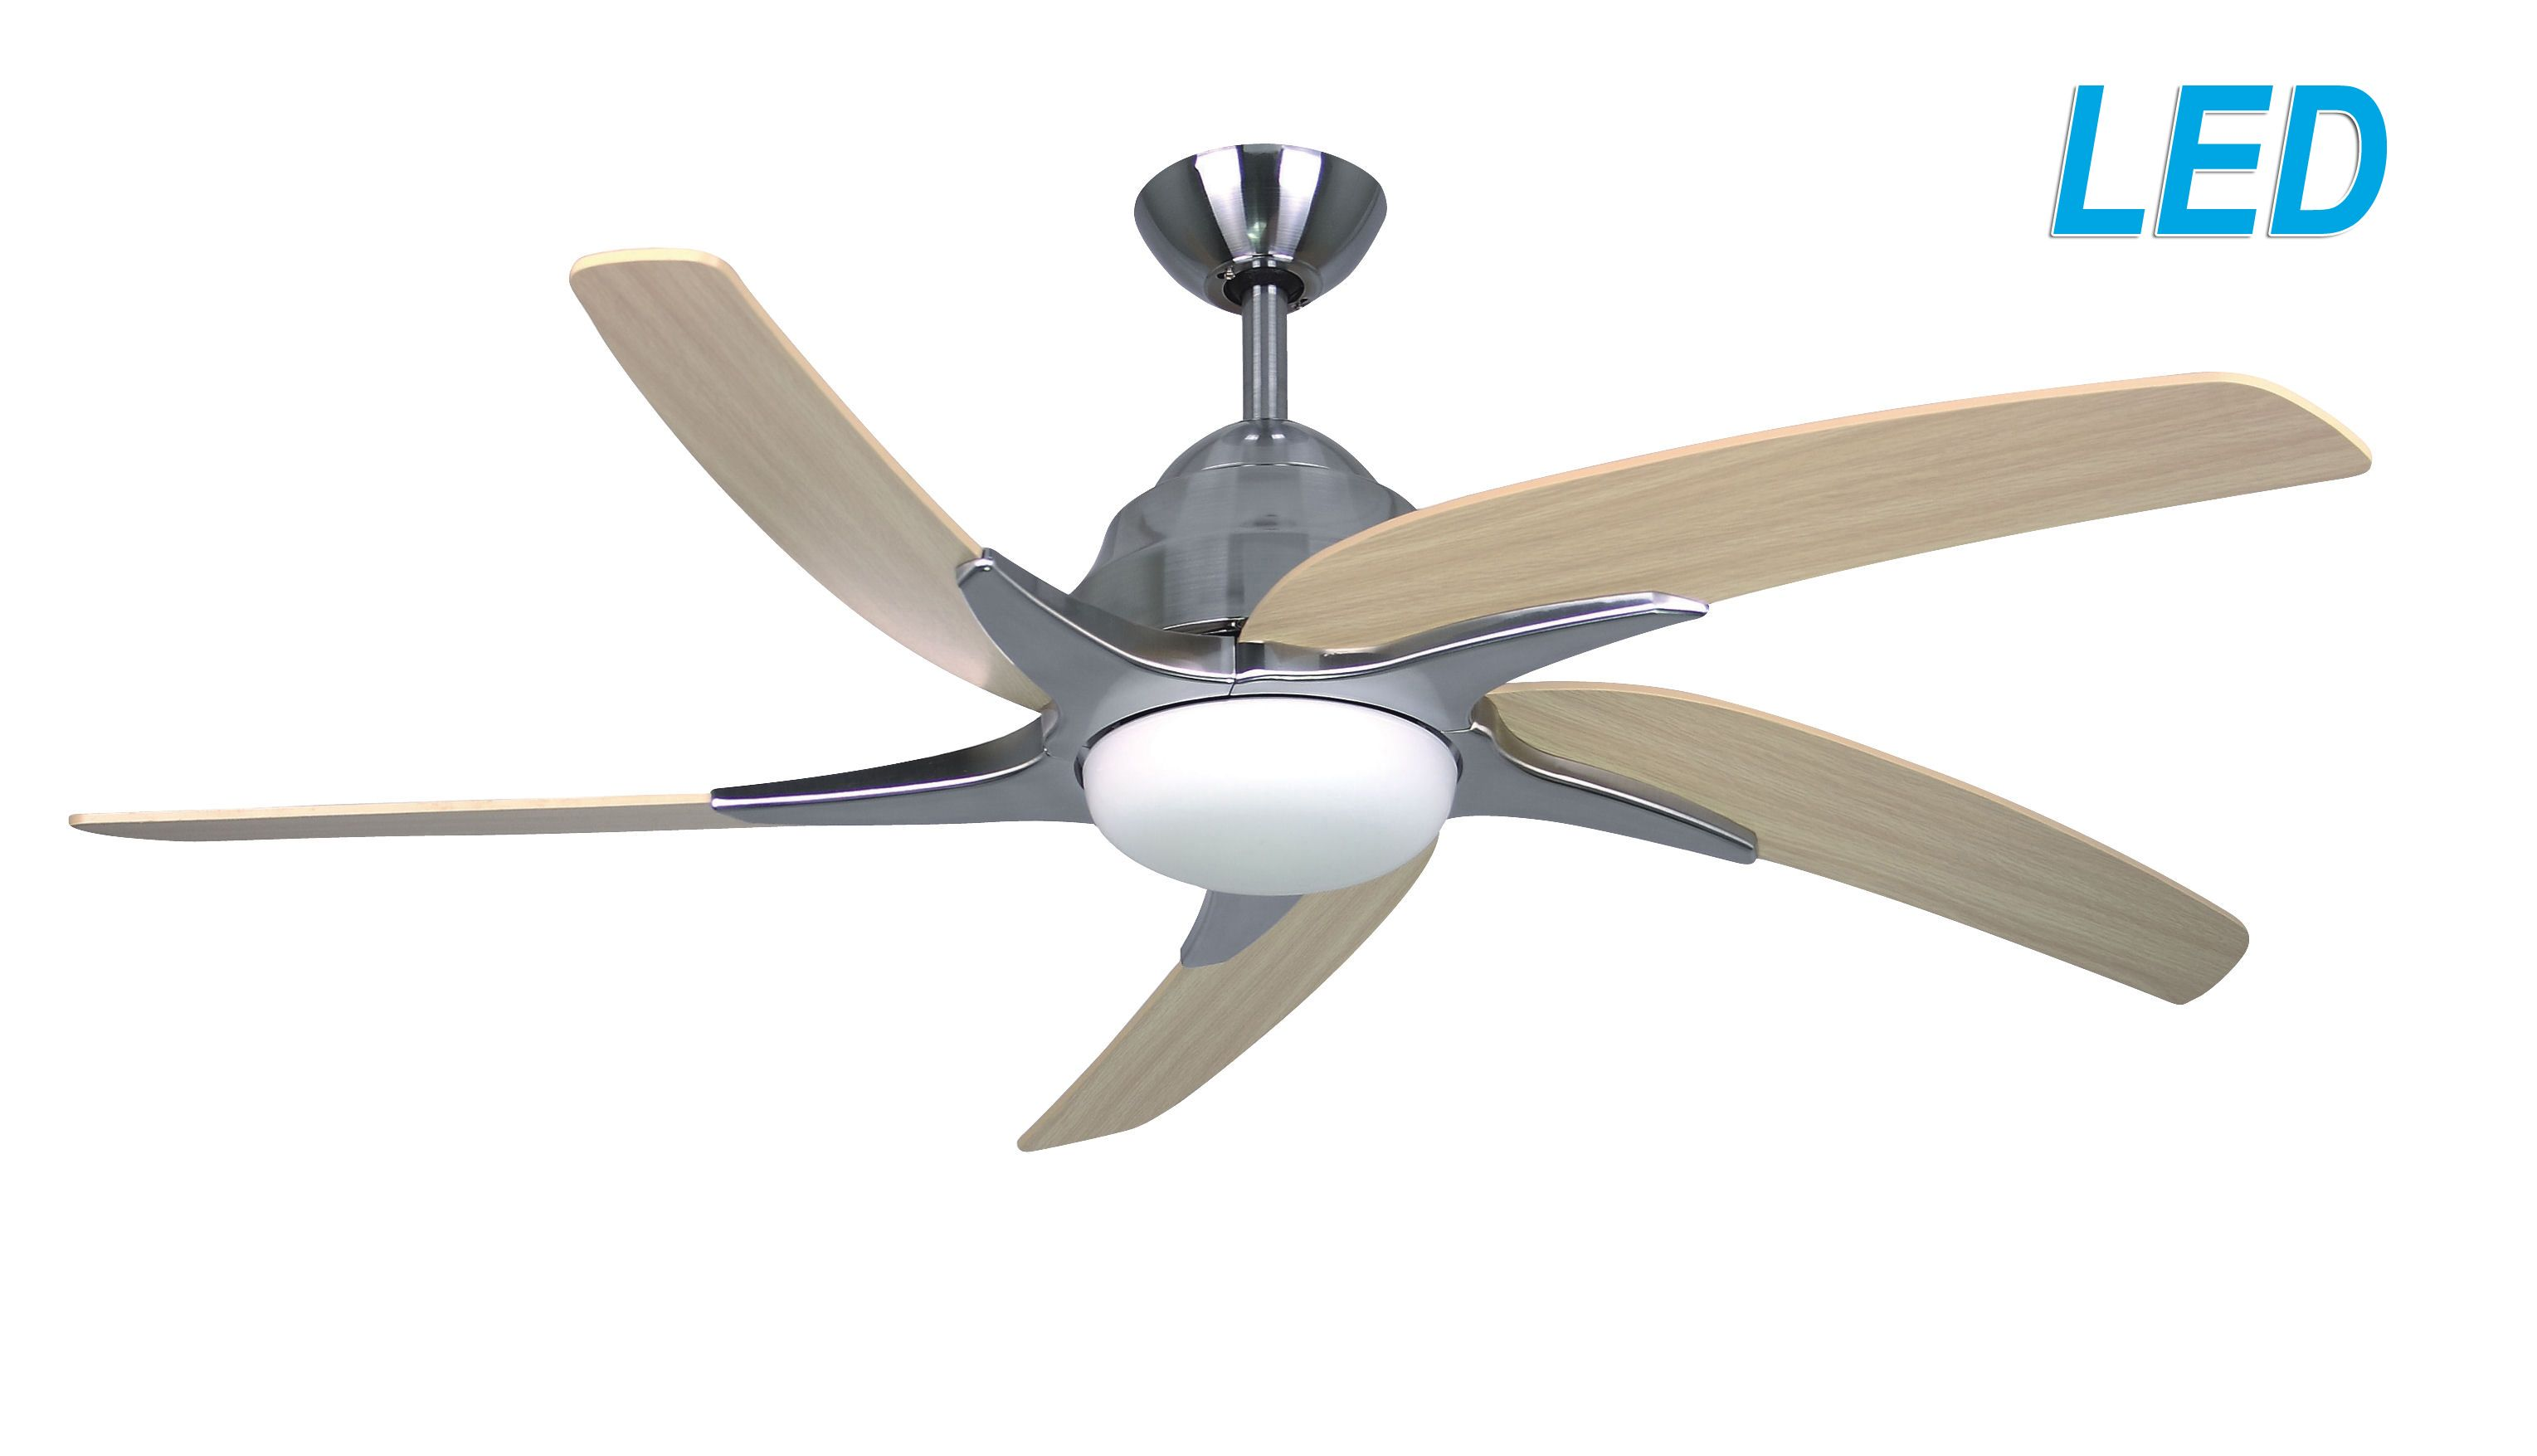 Fantasia Elite Viper Plus 44 Stainless Steel Ceiling Fan Remote Control Led Light 116028